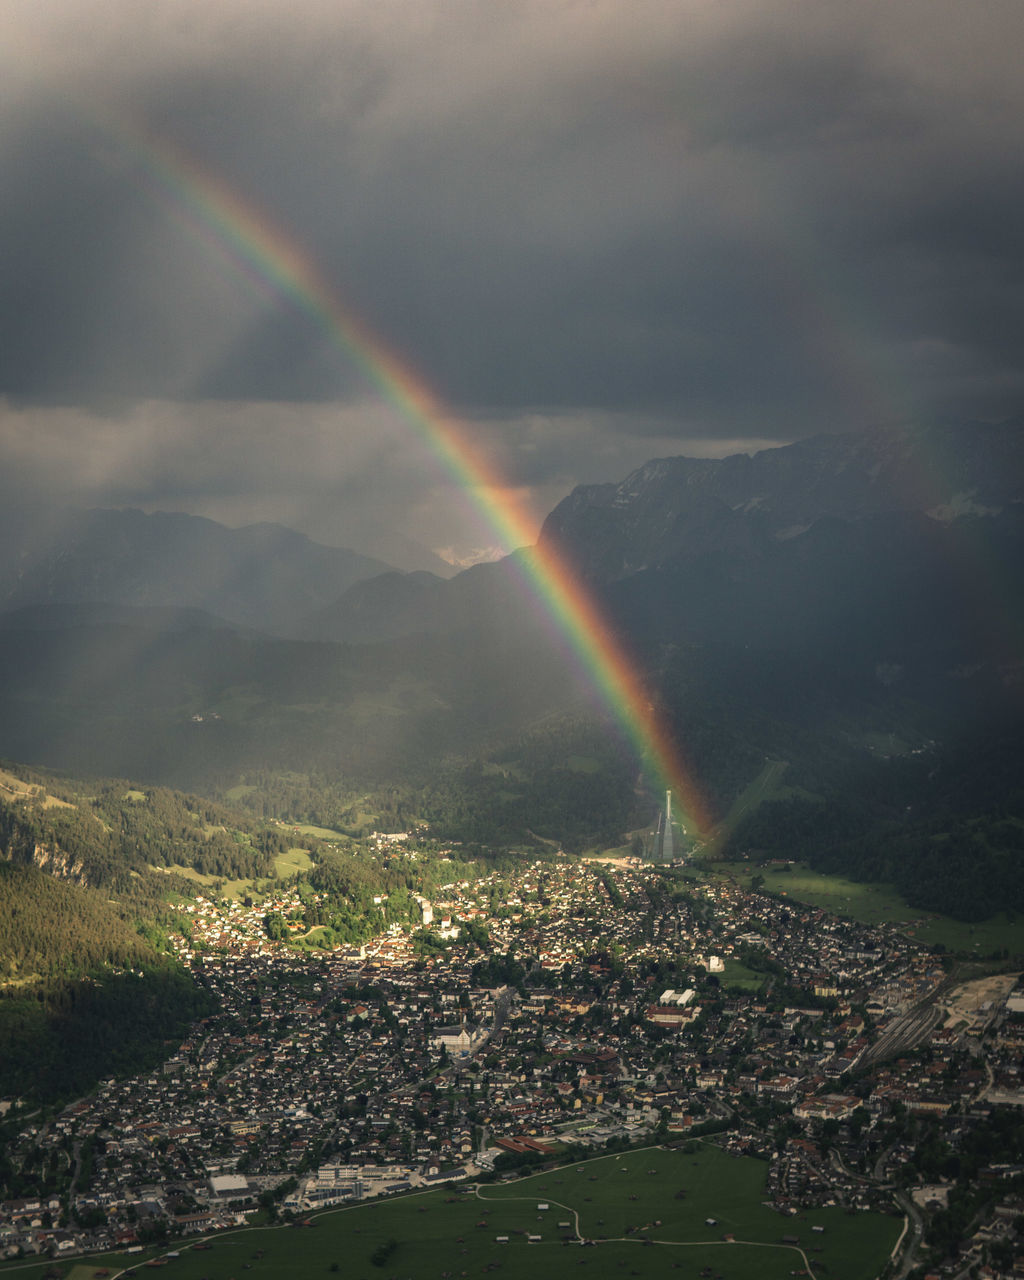 AERIAL VIEW OF RAINBOW OVER CITYSCAPE